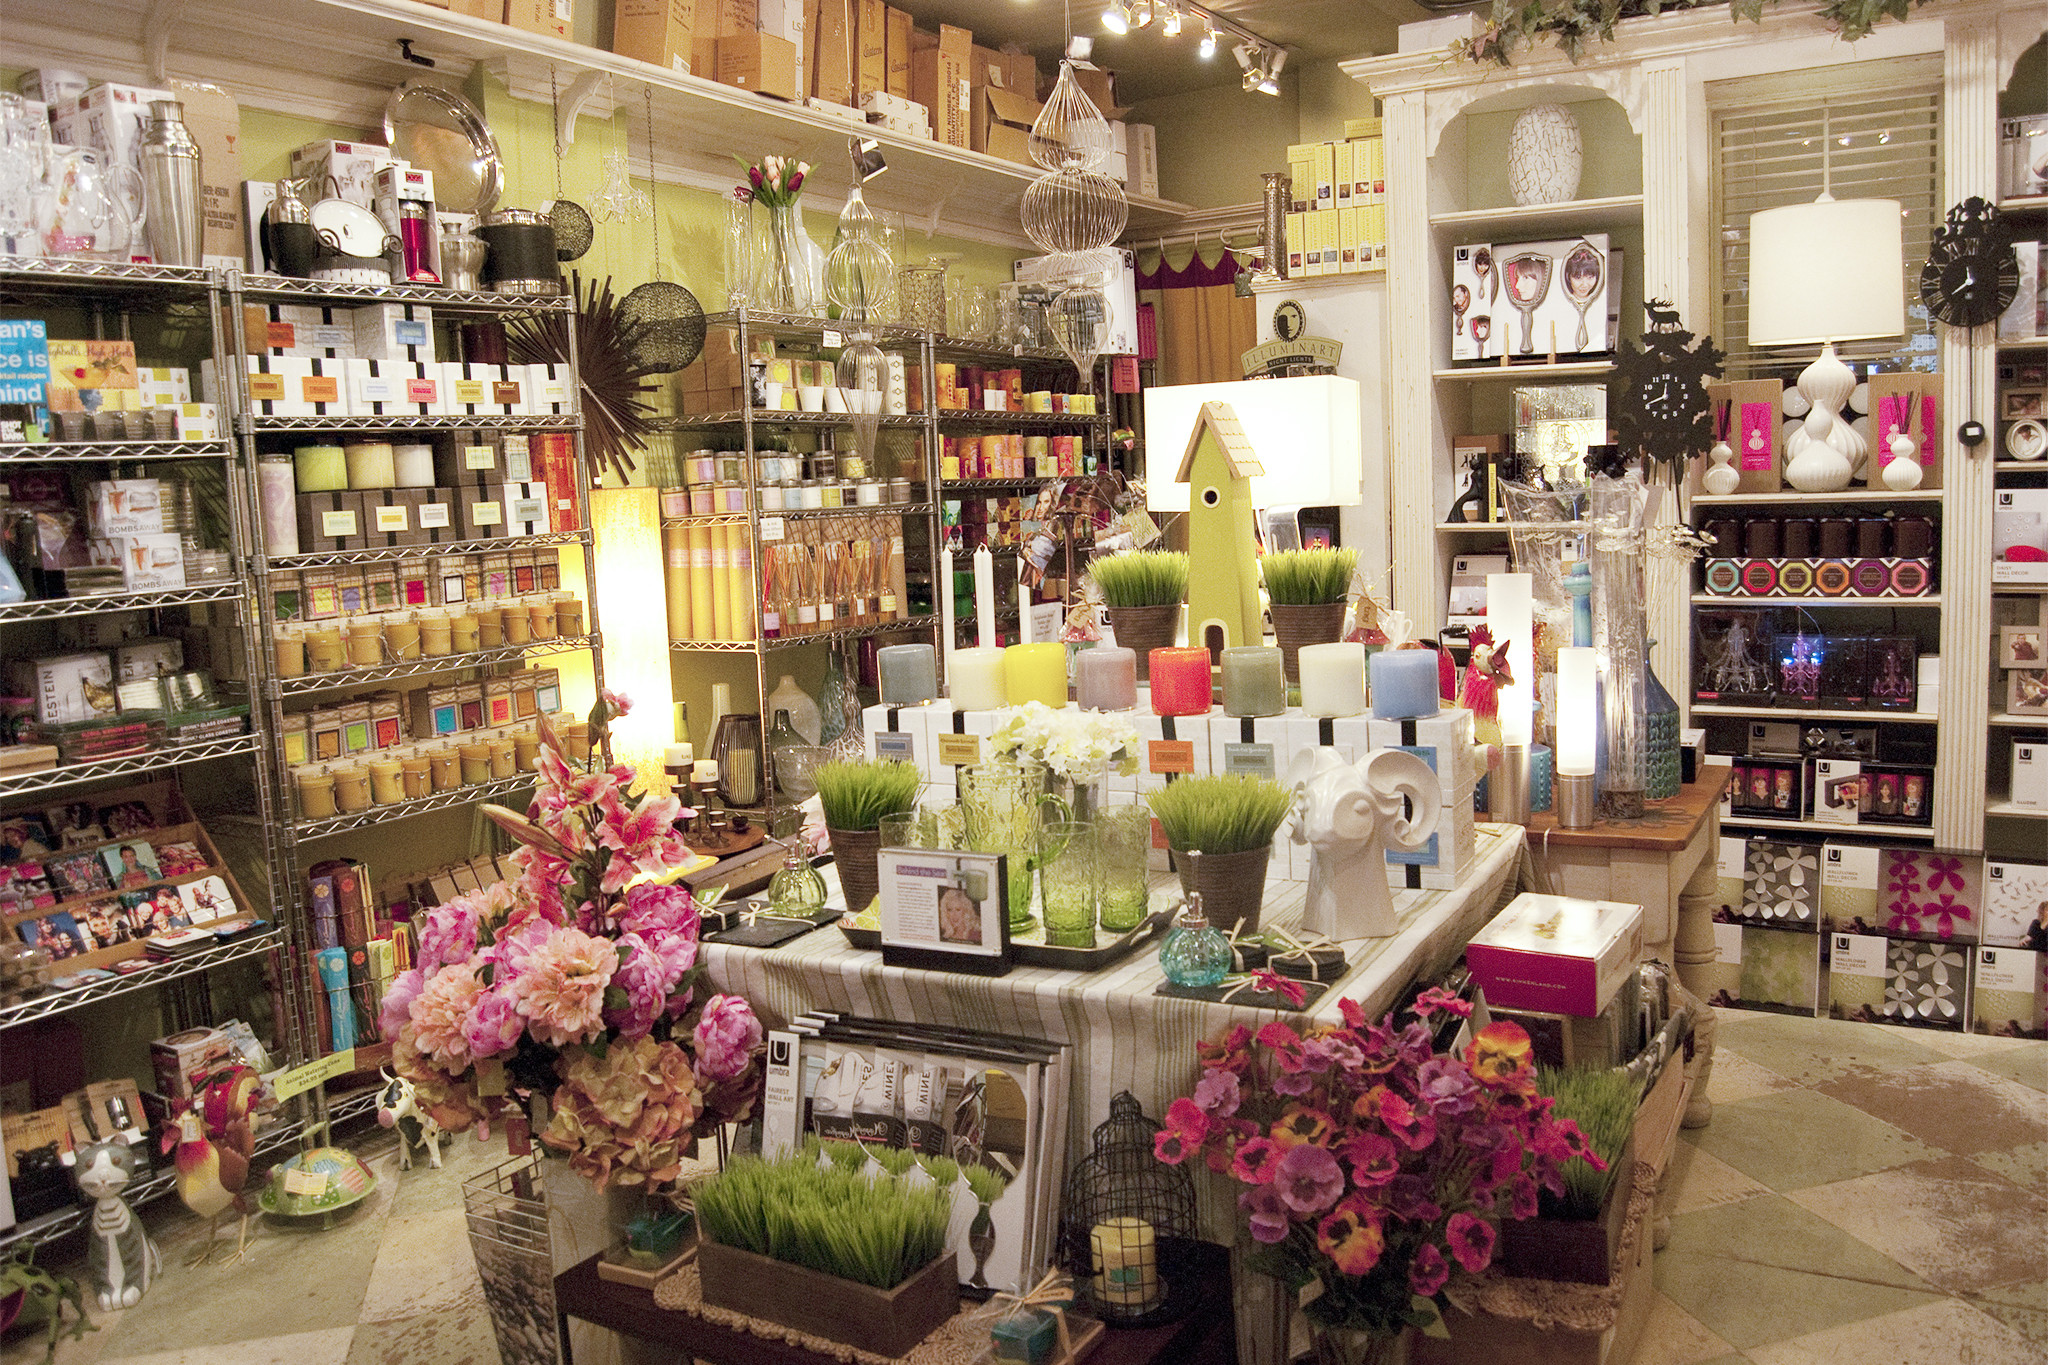 Best ideas about Kitchen Decor Store . Save or Pin Home decor stores in NYC for decorating ideas and home Now.